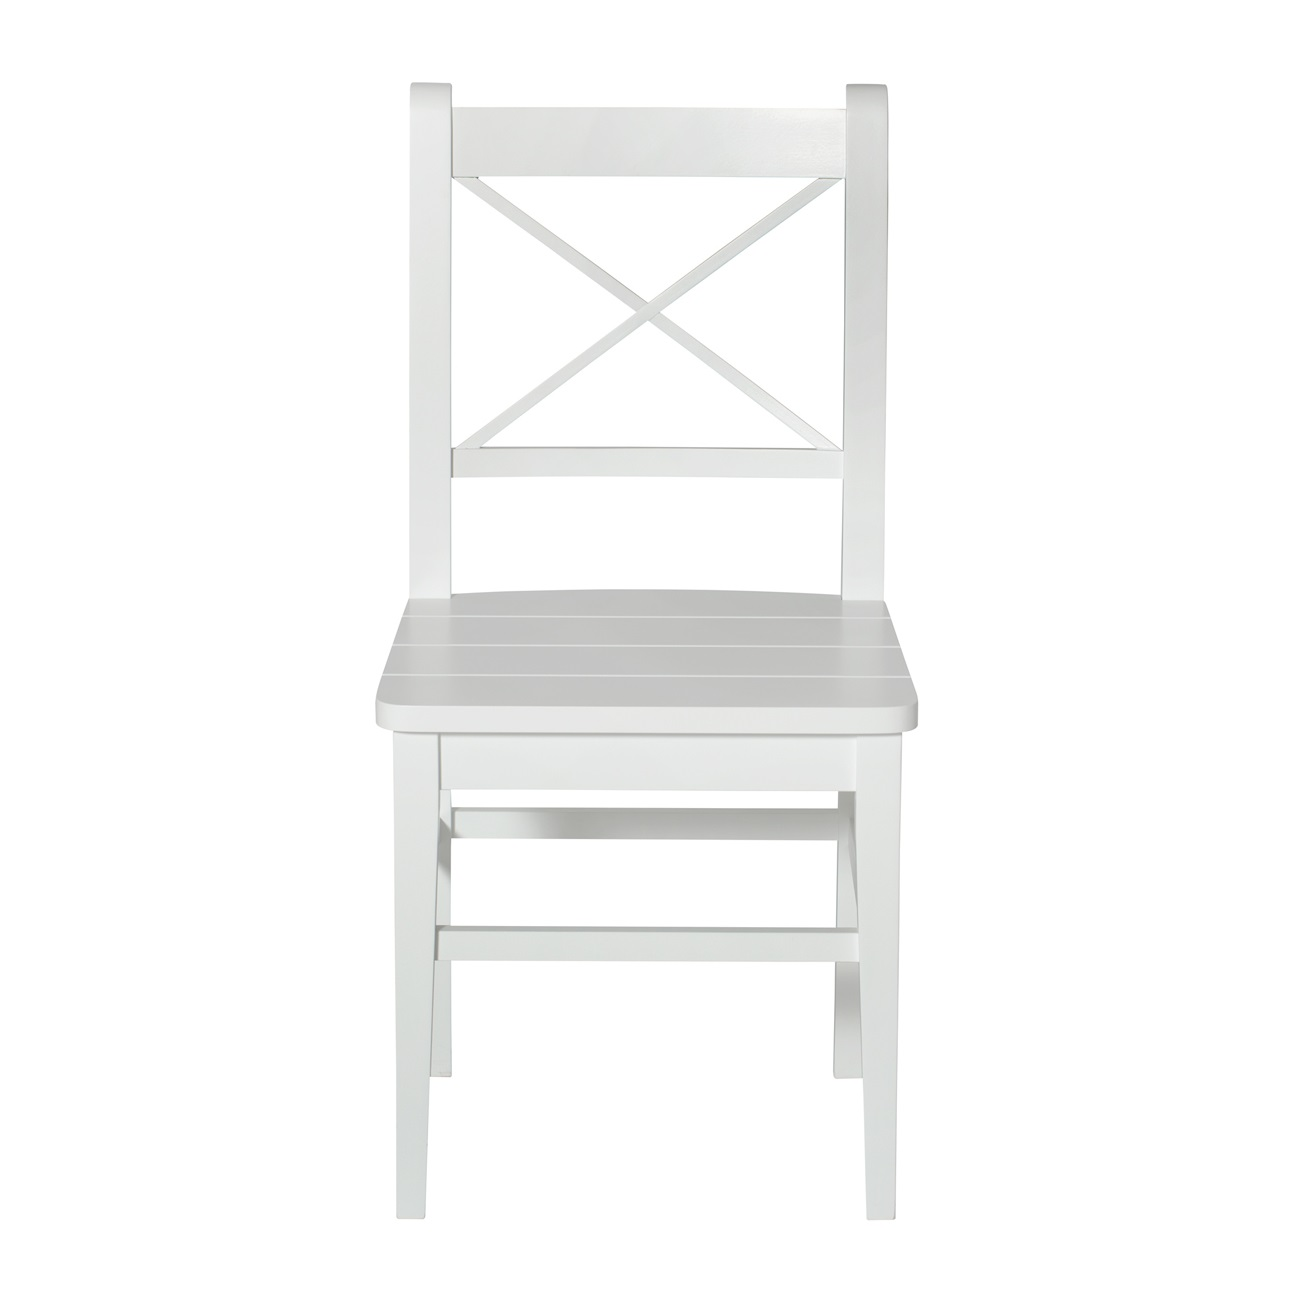 Stol nr 10 Seaside collection vit, Oliver Furniture